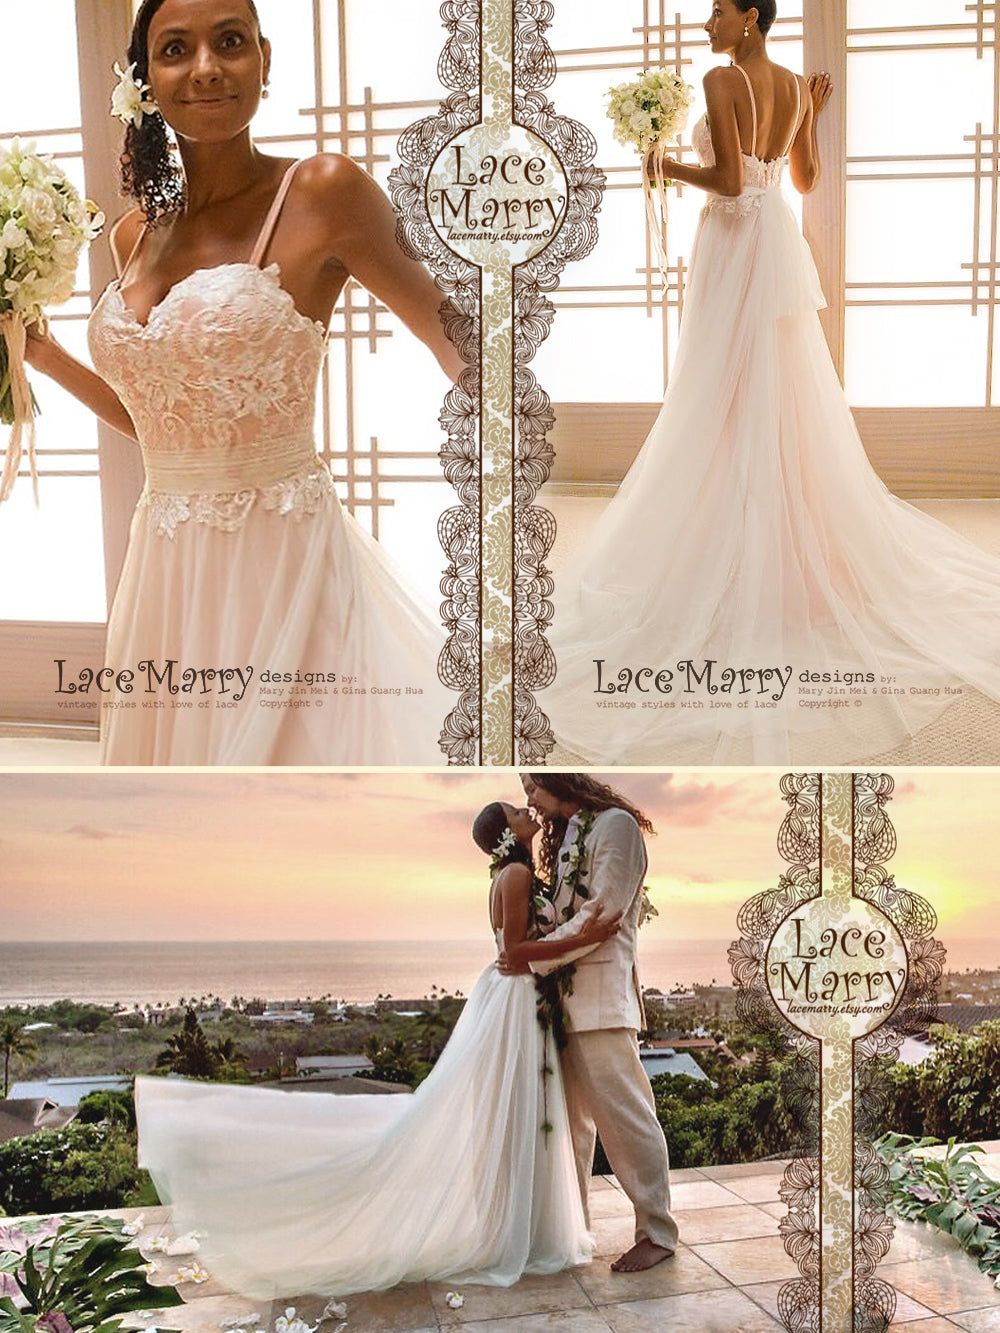 Rose Gold Beach Wedding Dress From Lace And Soft Tulle In Relaxed